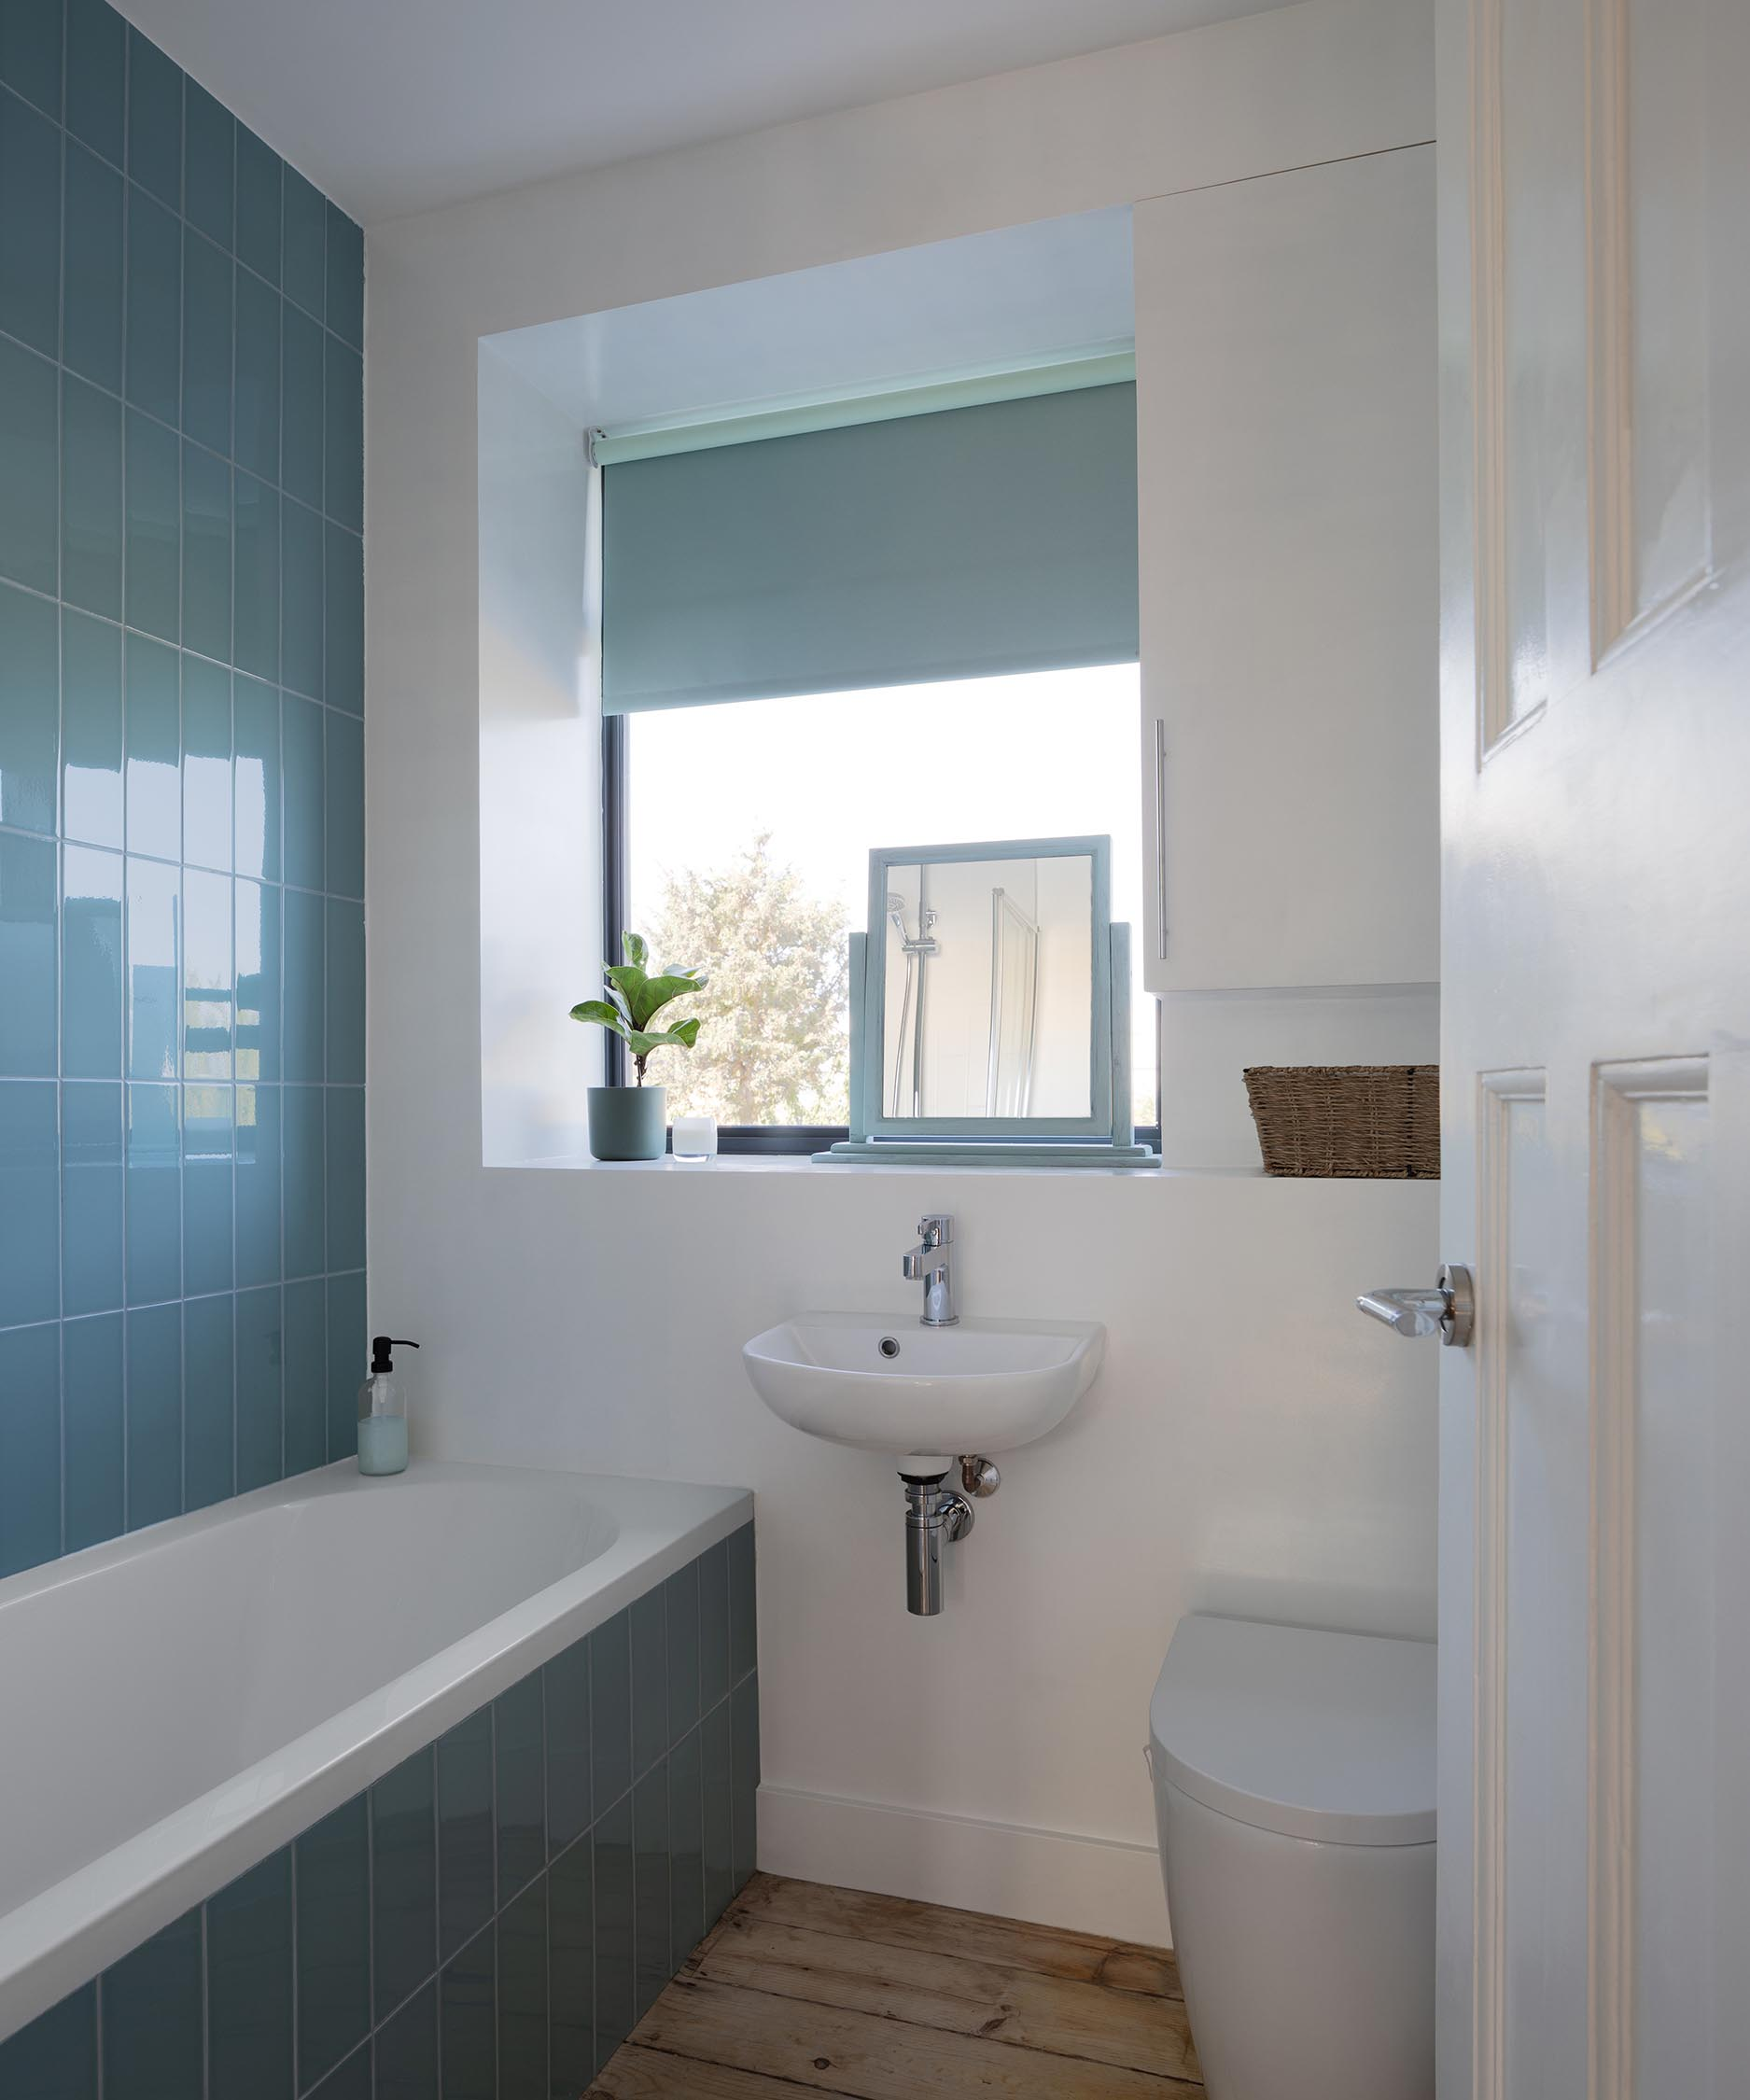 A bathroom with blue tiles.